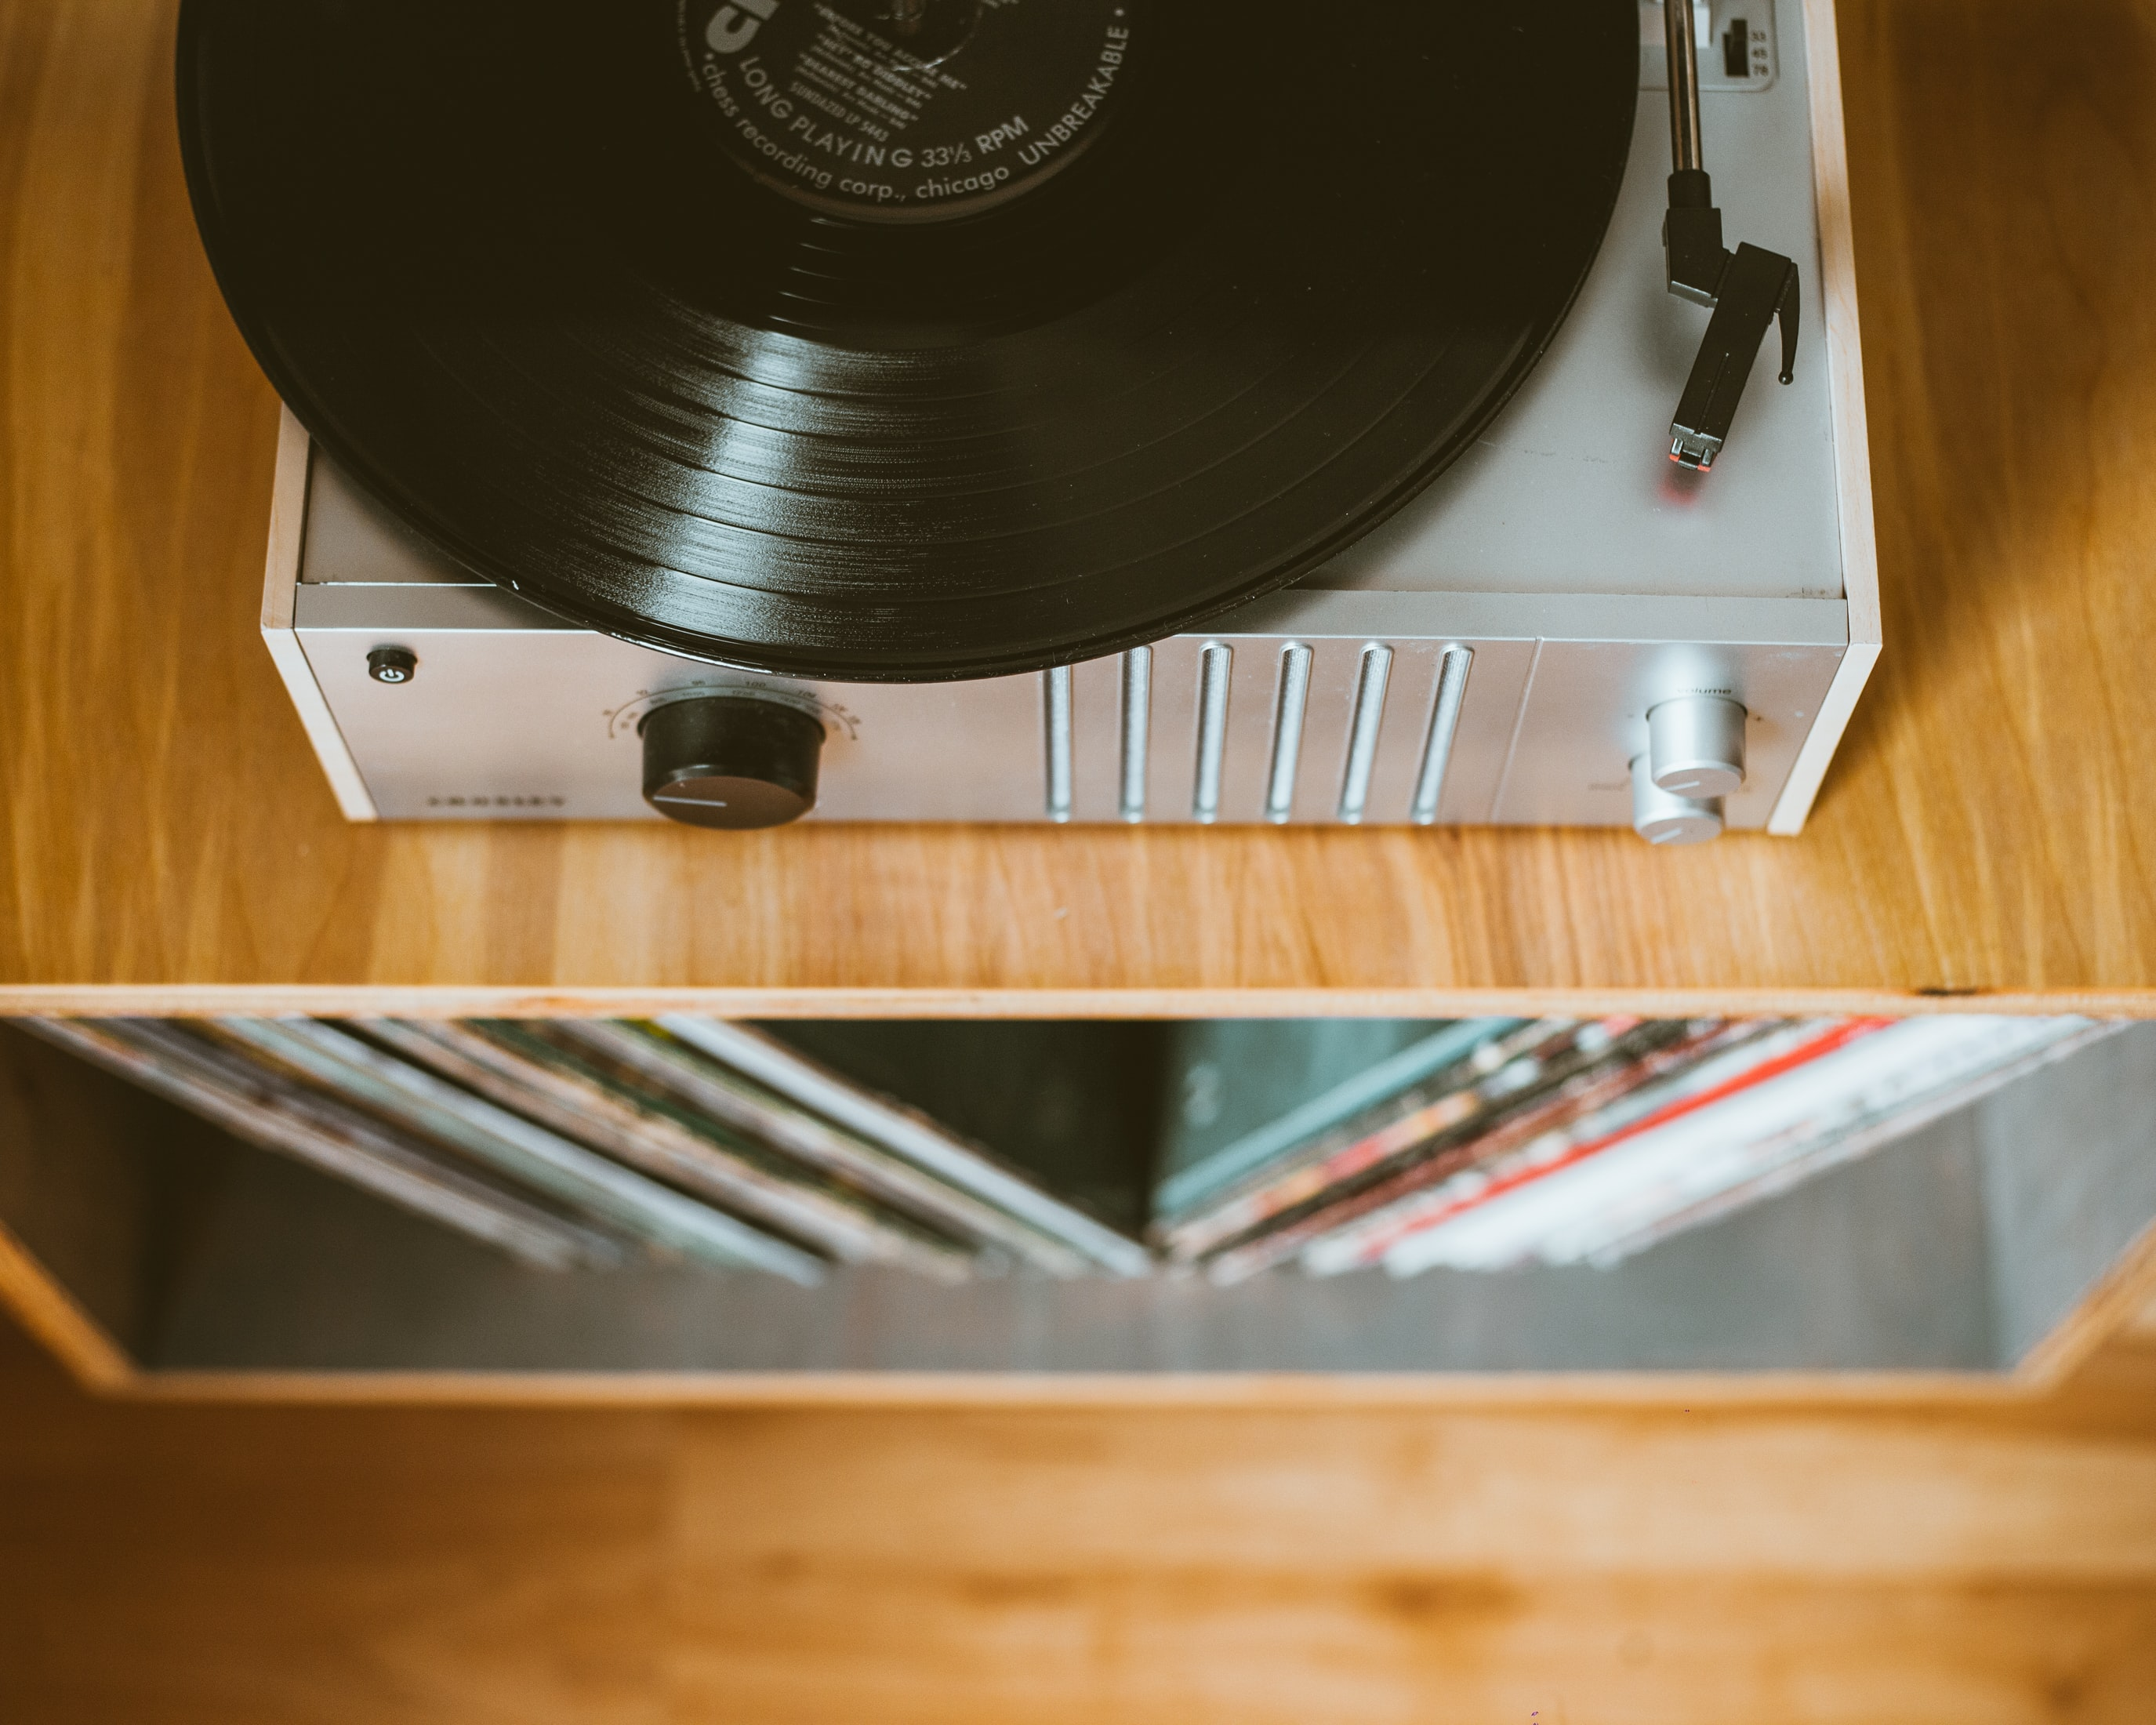 An overhead shot of a silver turntable on a wooden cabinet